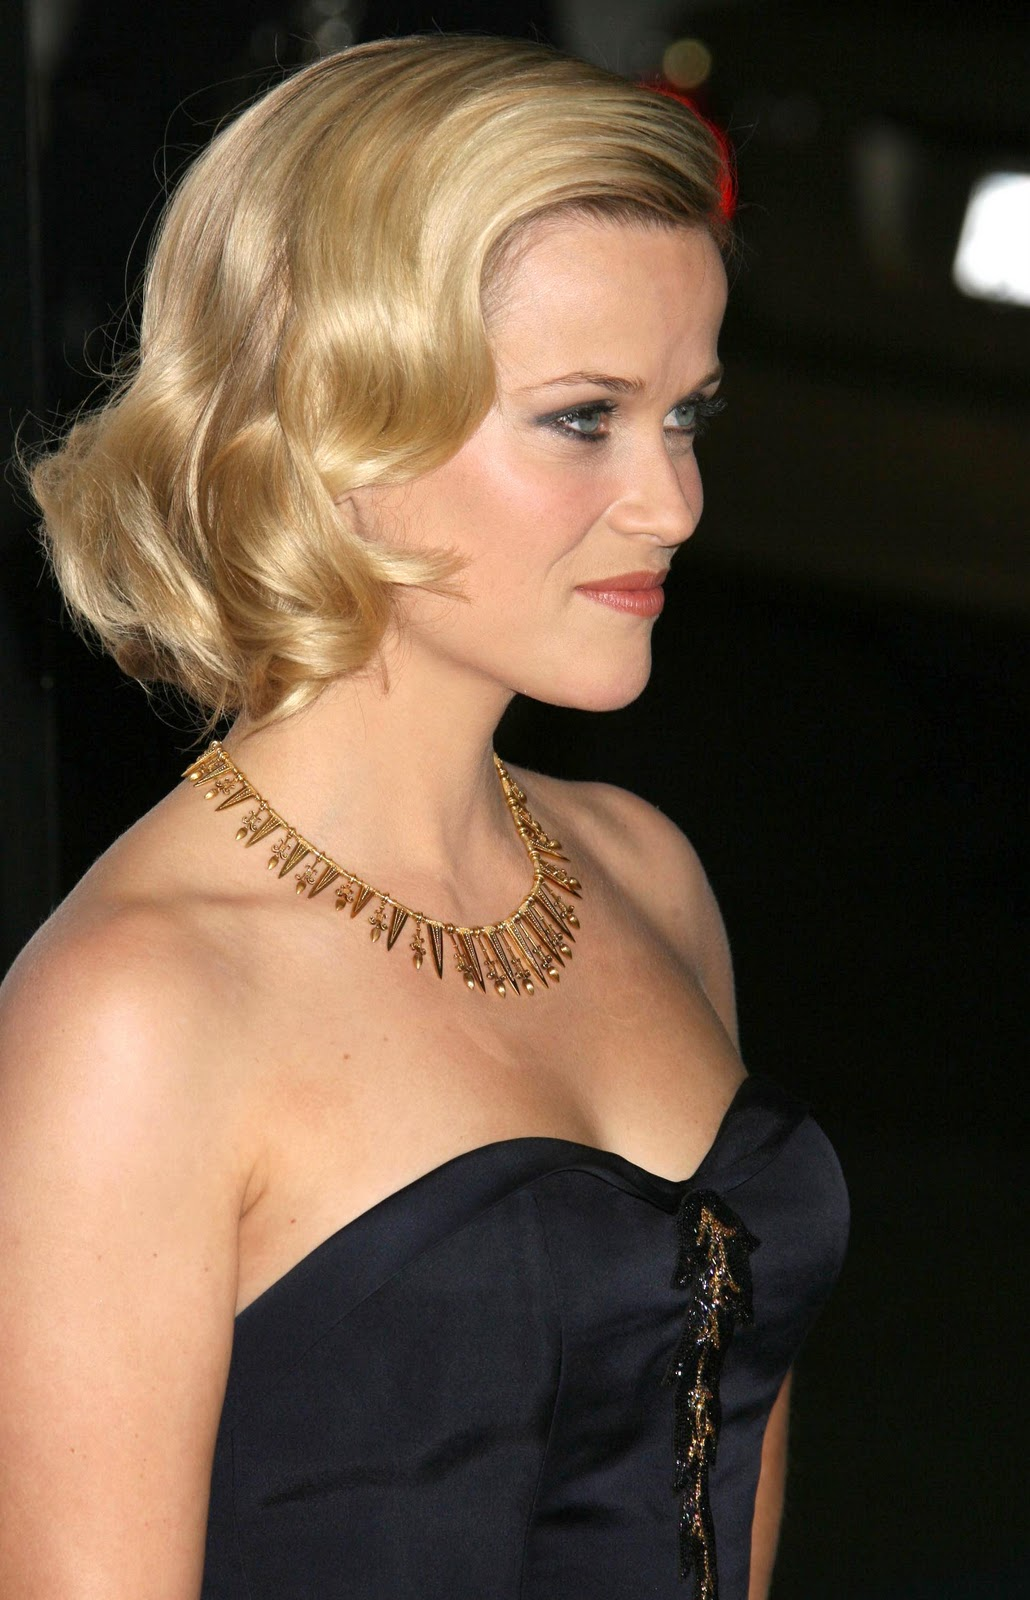 Reese Witherspoon Pictures Gallery 12 Film Actresses